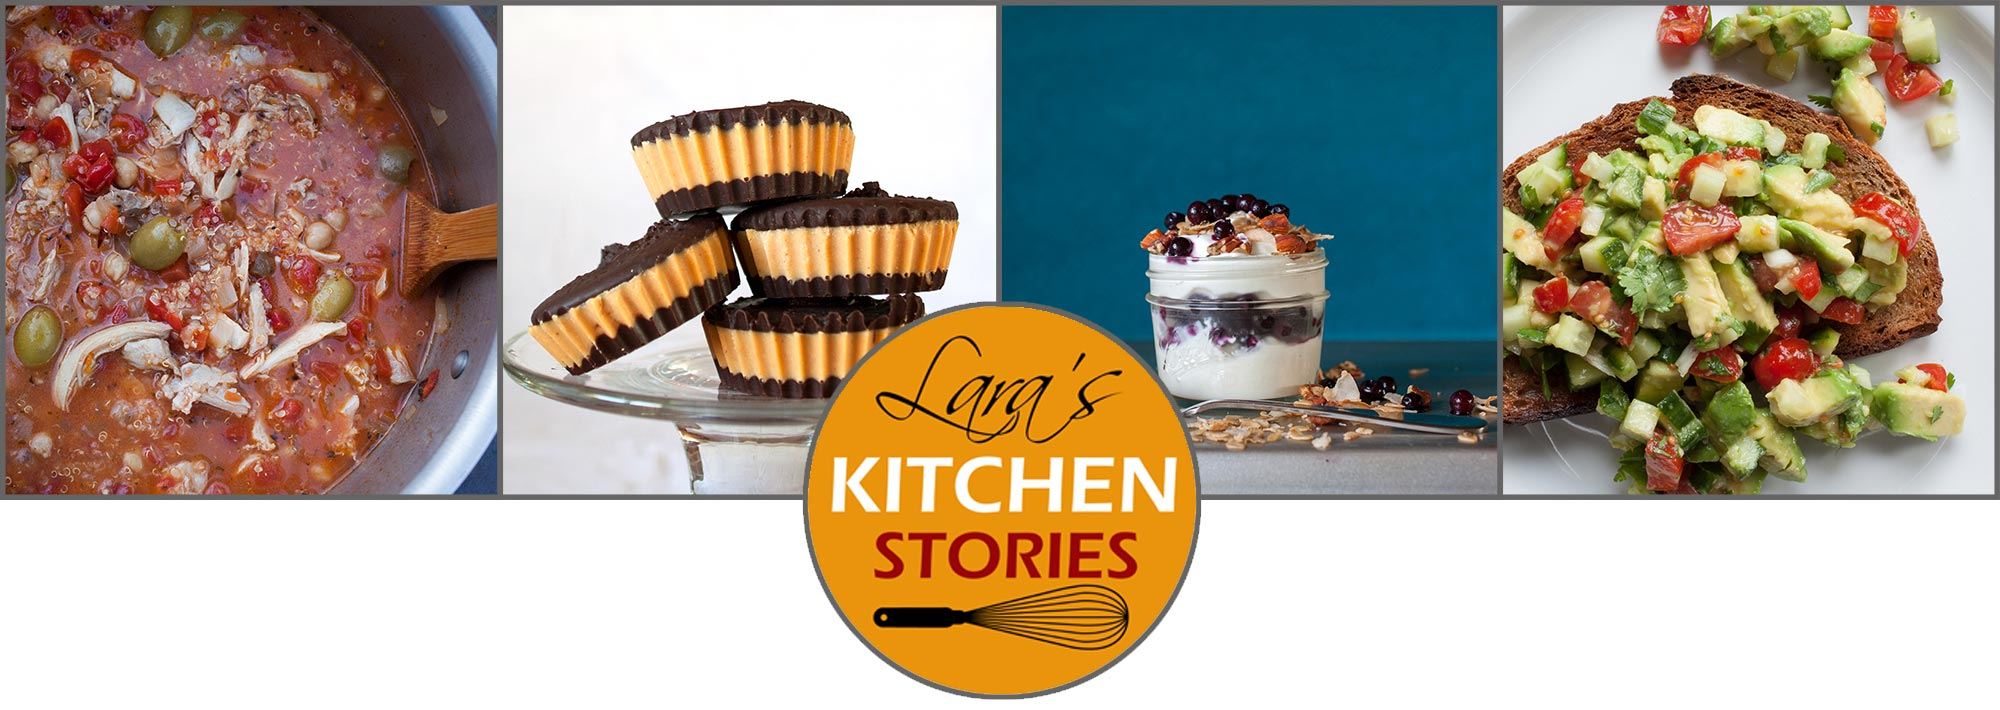 Lara's Kitchen Stories